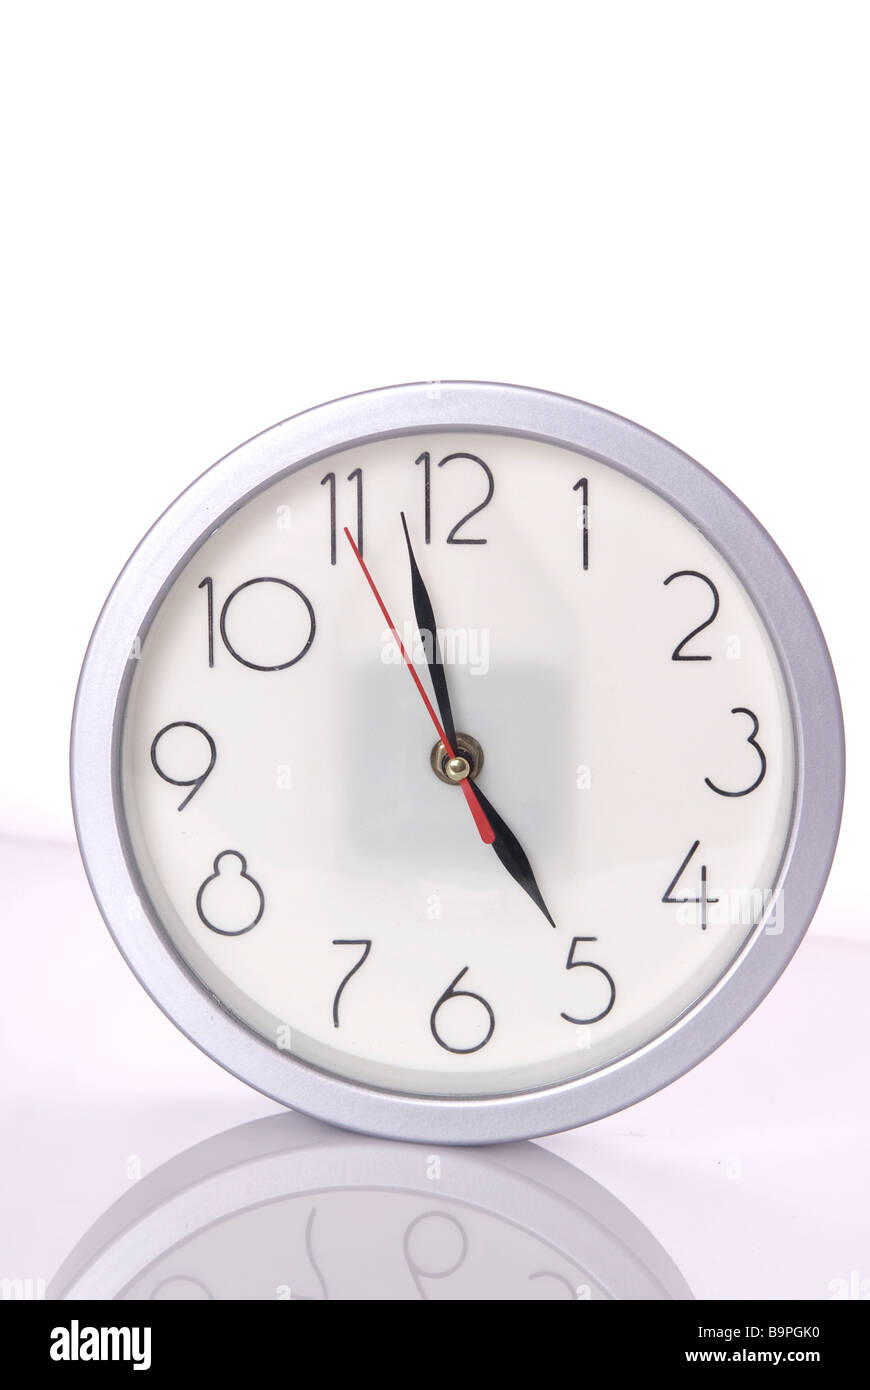 Wall clock against a white background - Stock Image